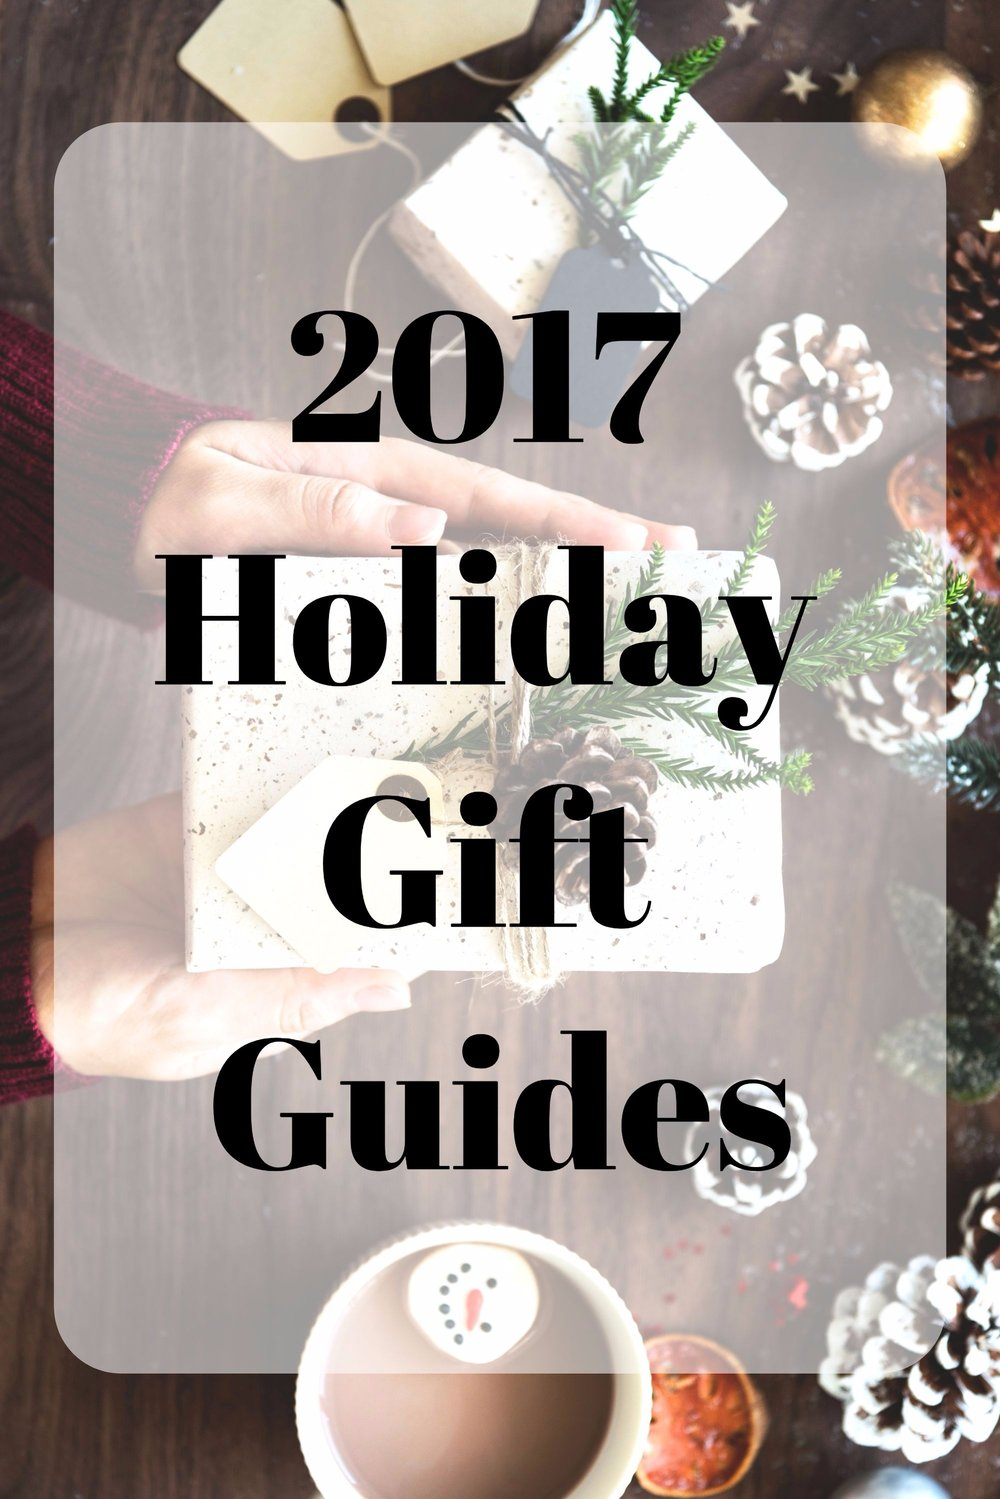 2017 holiday gift guides for her and for him. Christmas gift ideas